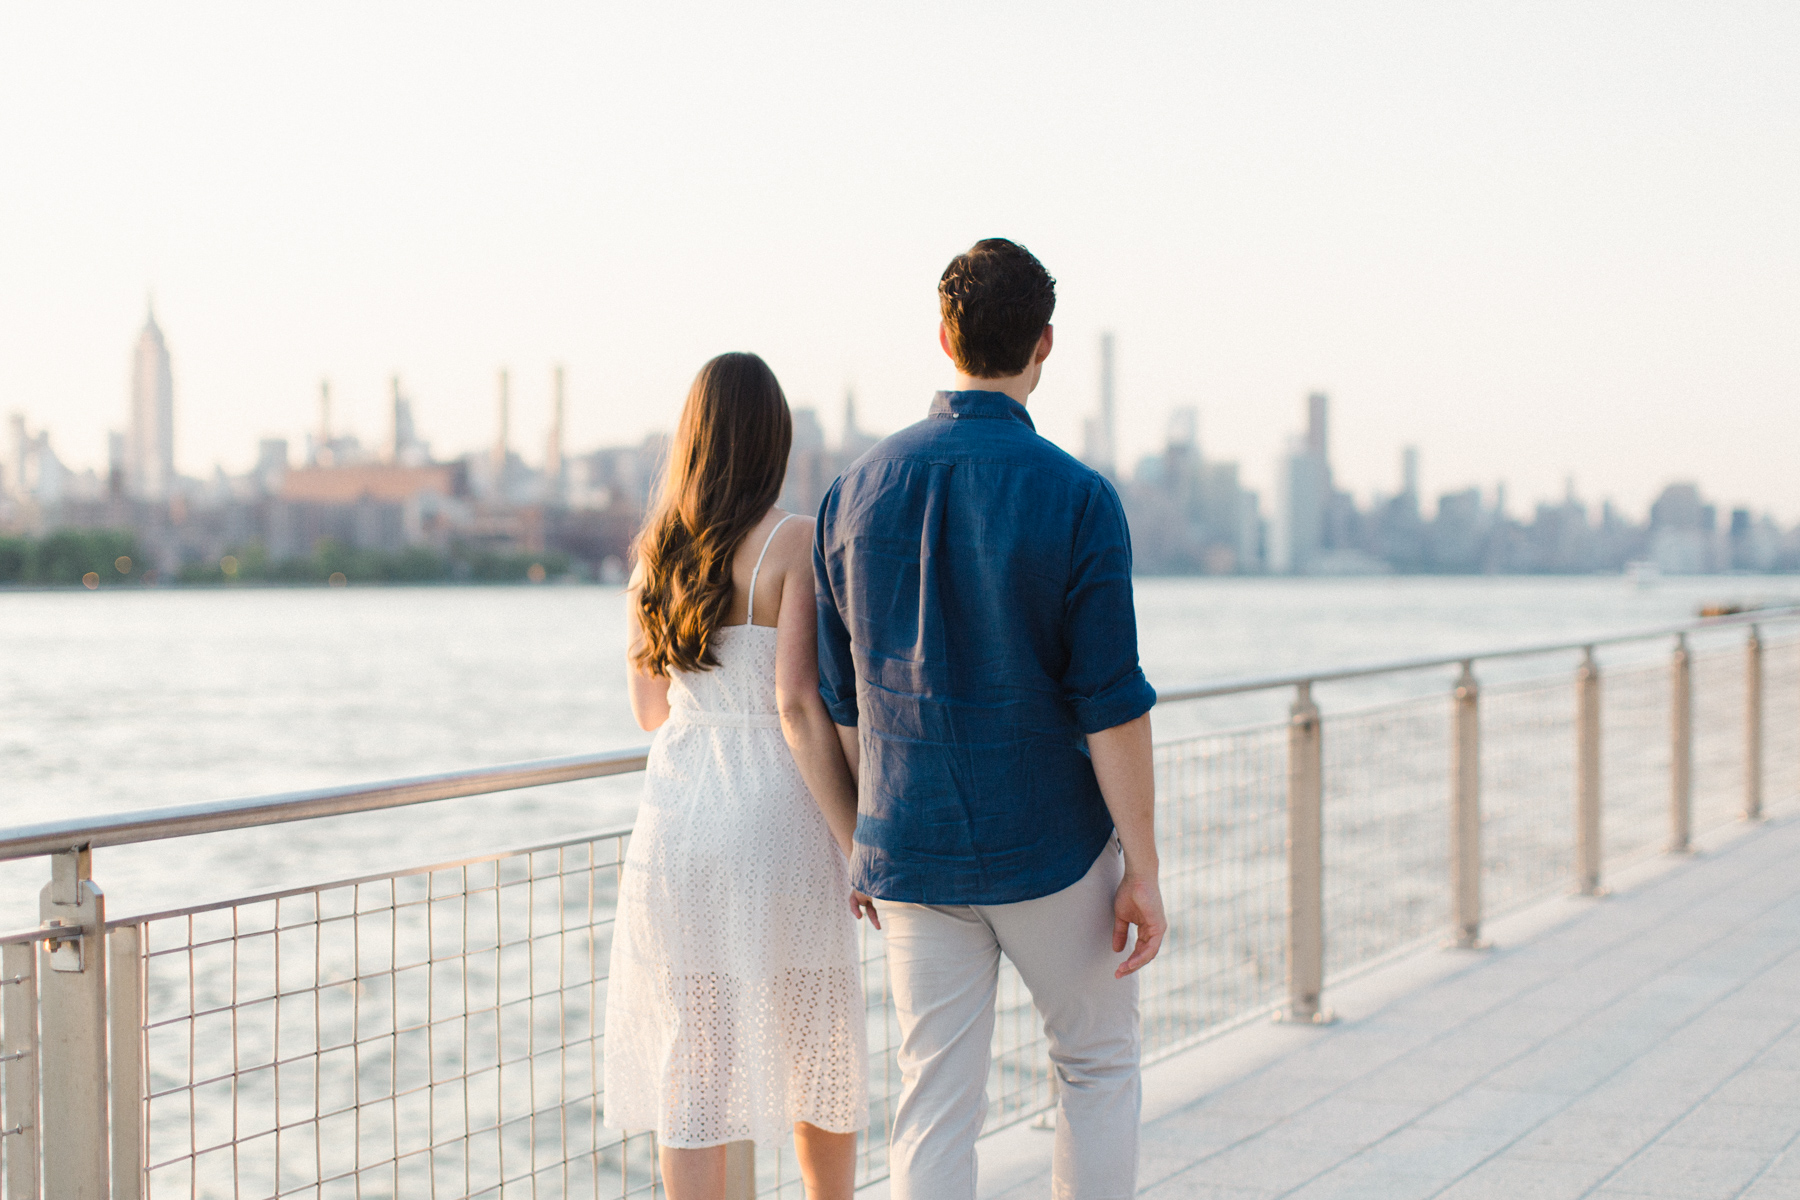 NYC-engagement-Photos-Photographer-Wedding-08.jpg